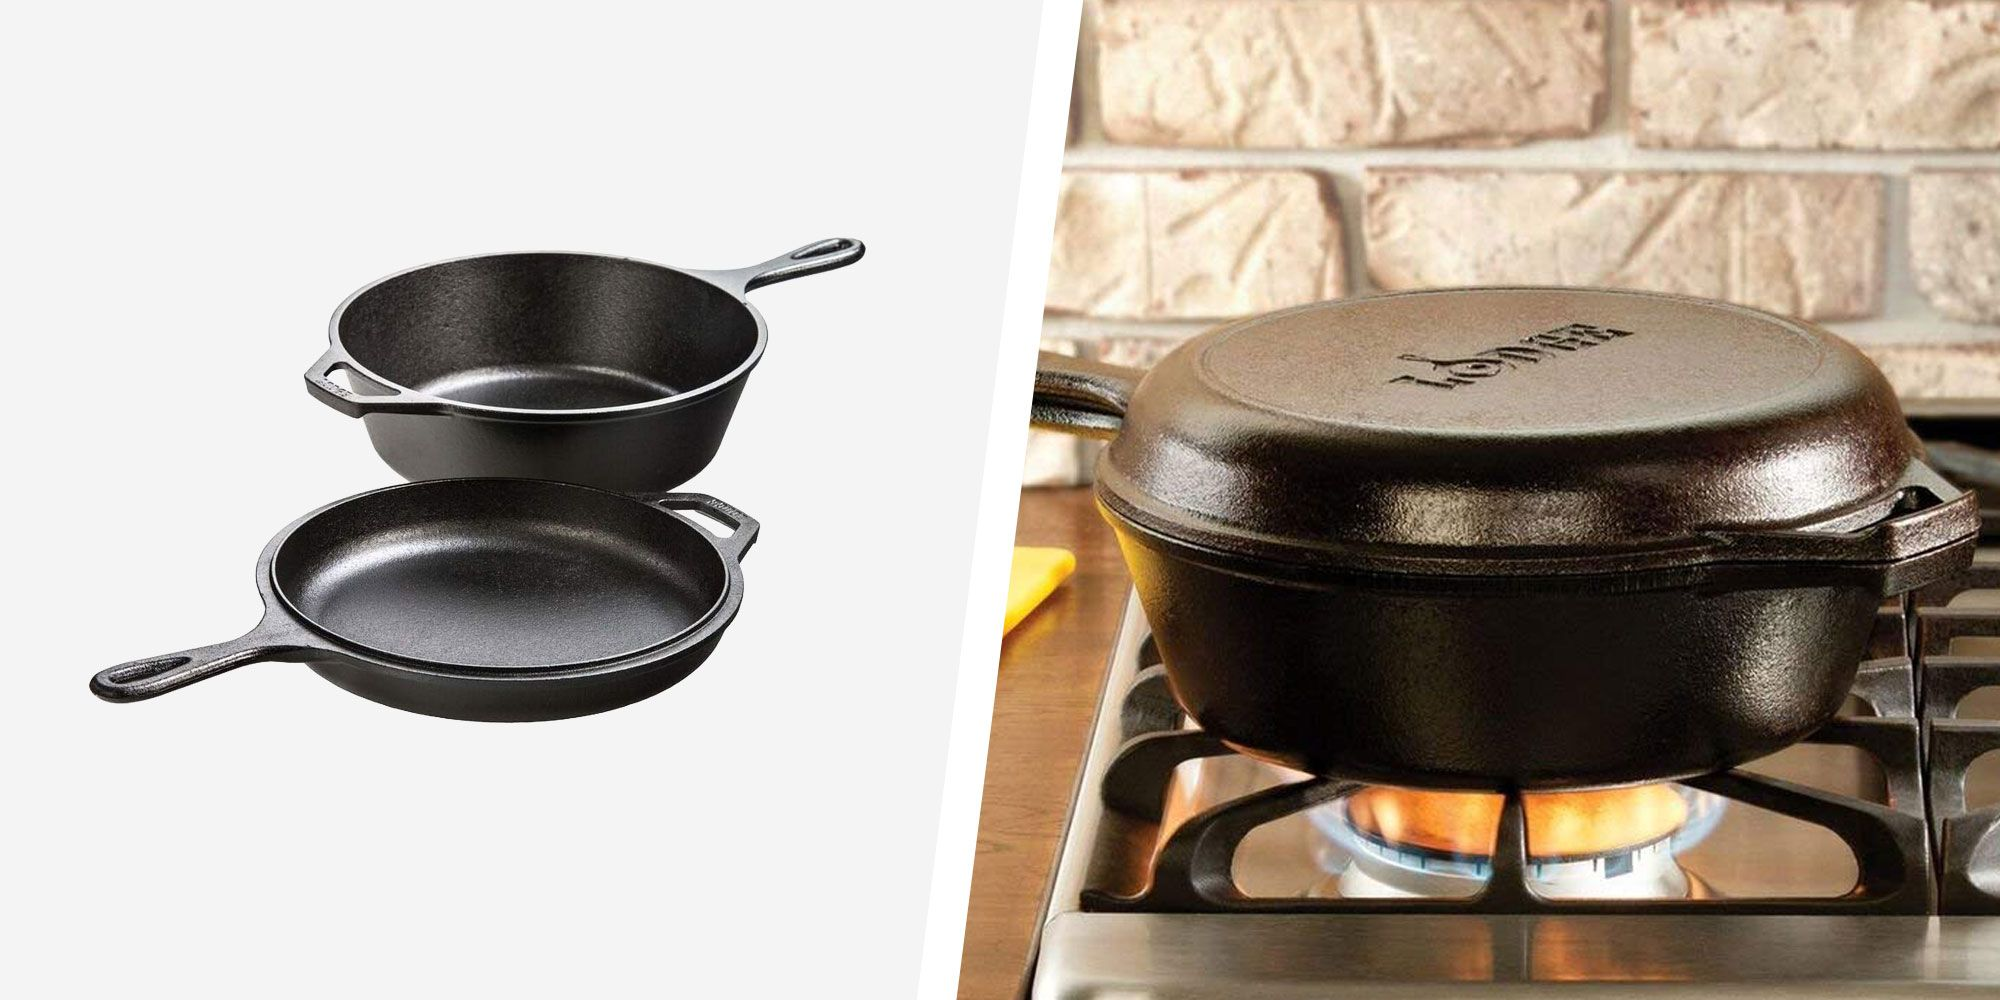 This Amazon's Choice Lodge Cast-Iron Cooking Set Is on Sale Right Now